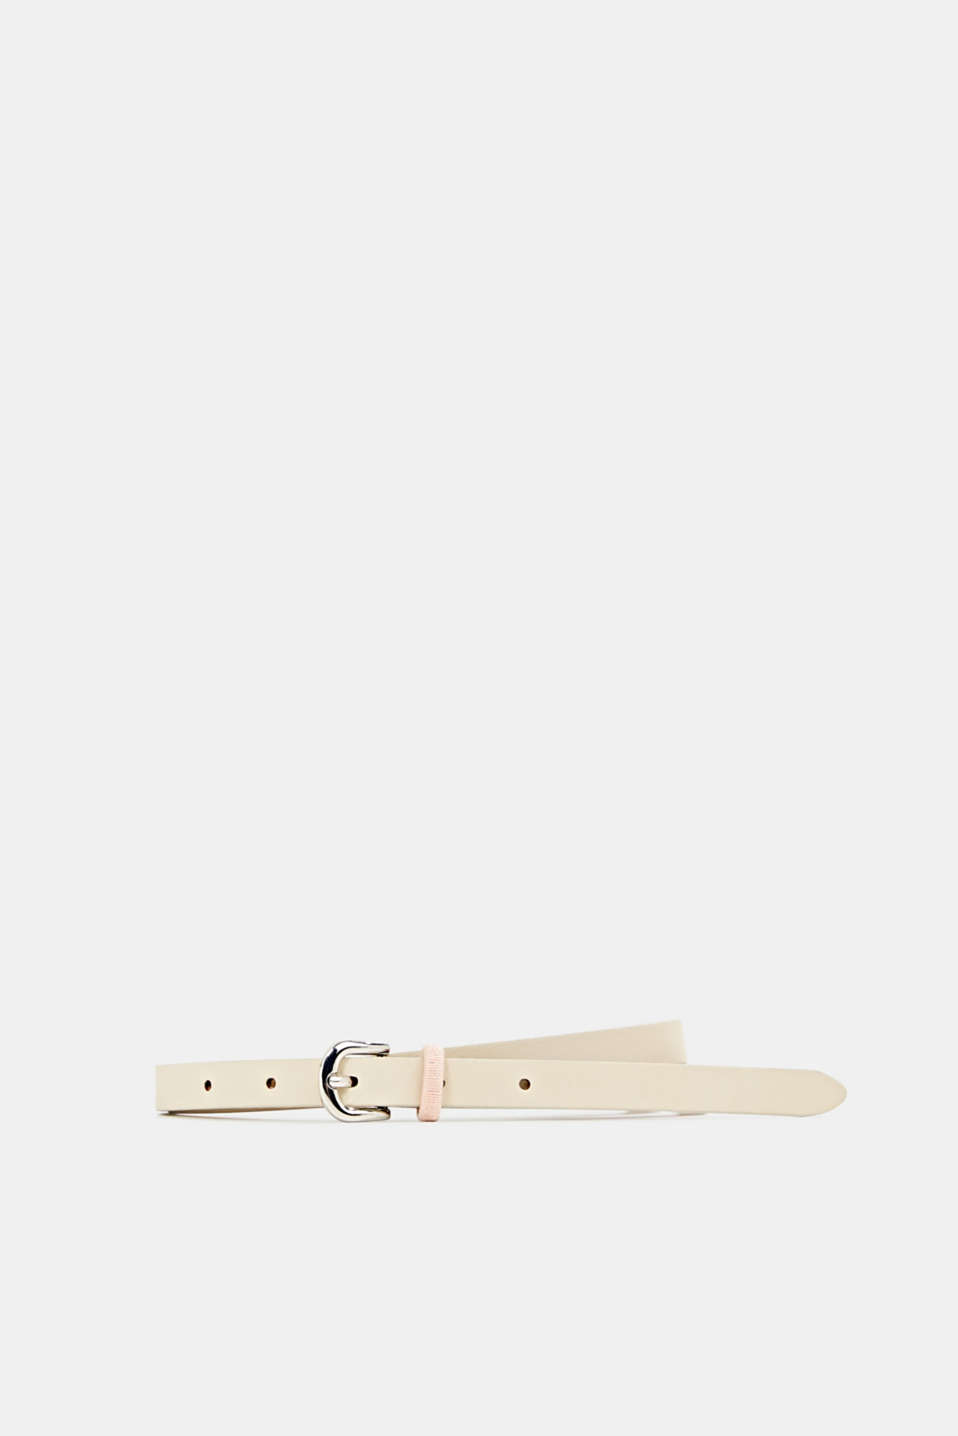 Esprit - Made of leather: Belt with a contrasting loop